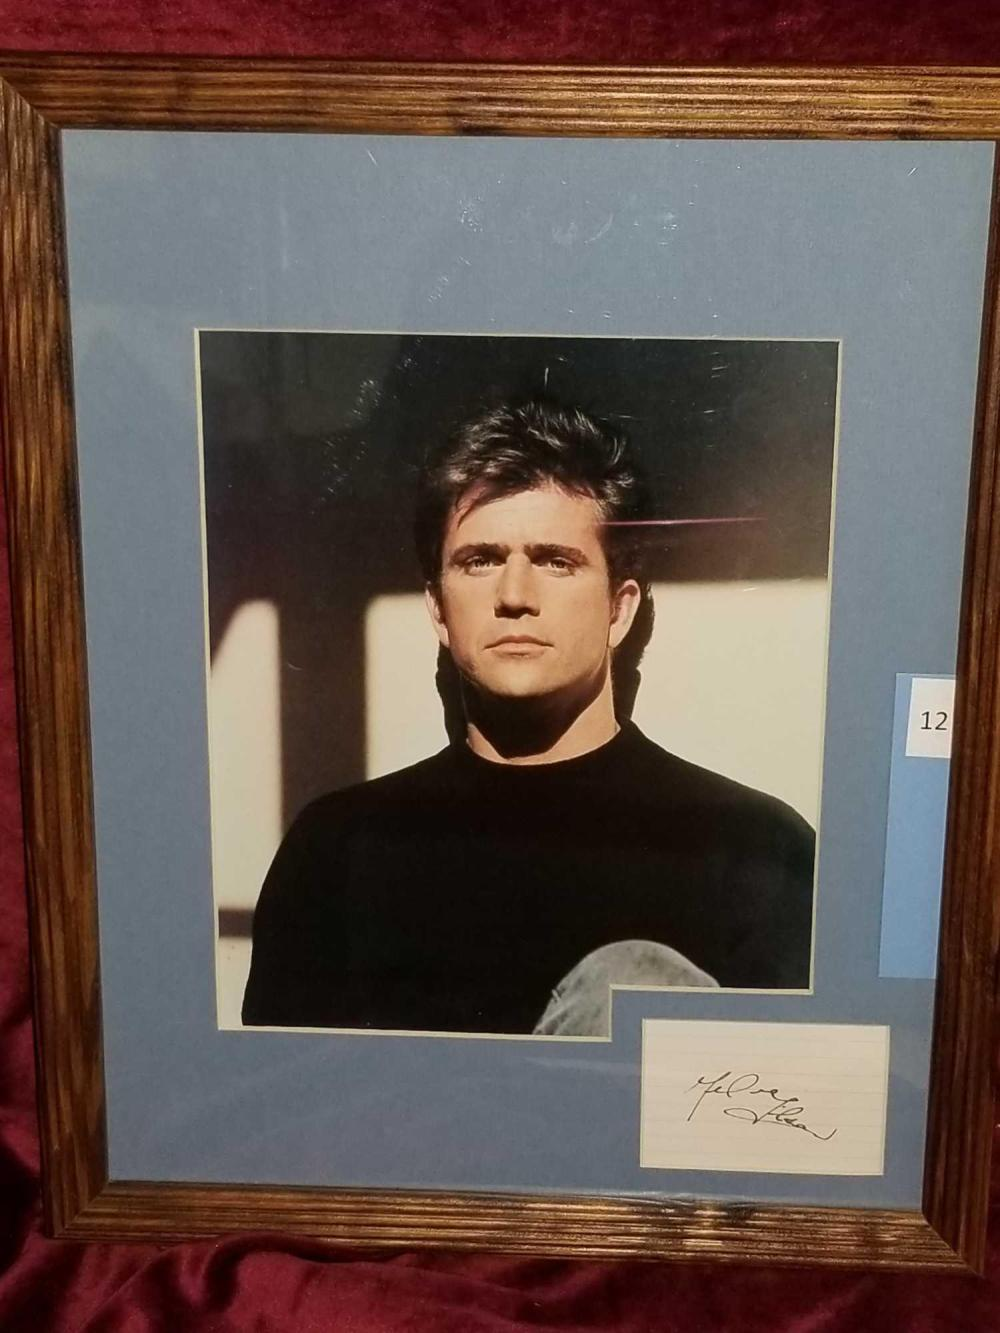 MEL GIBSON COLOR PHOTO & SIGNATURE CARD FRAMED & MATTED